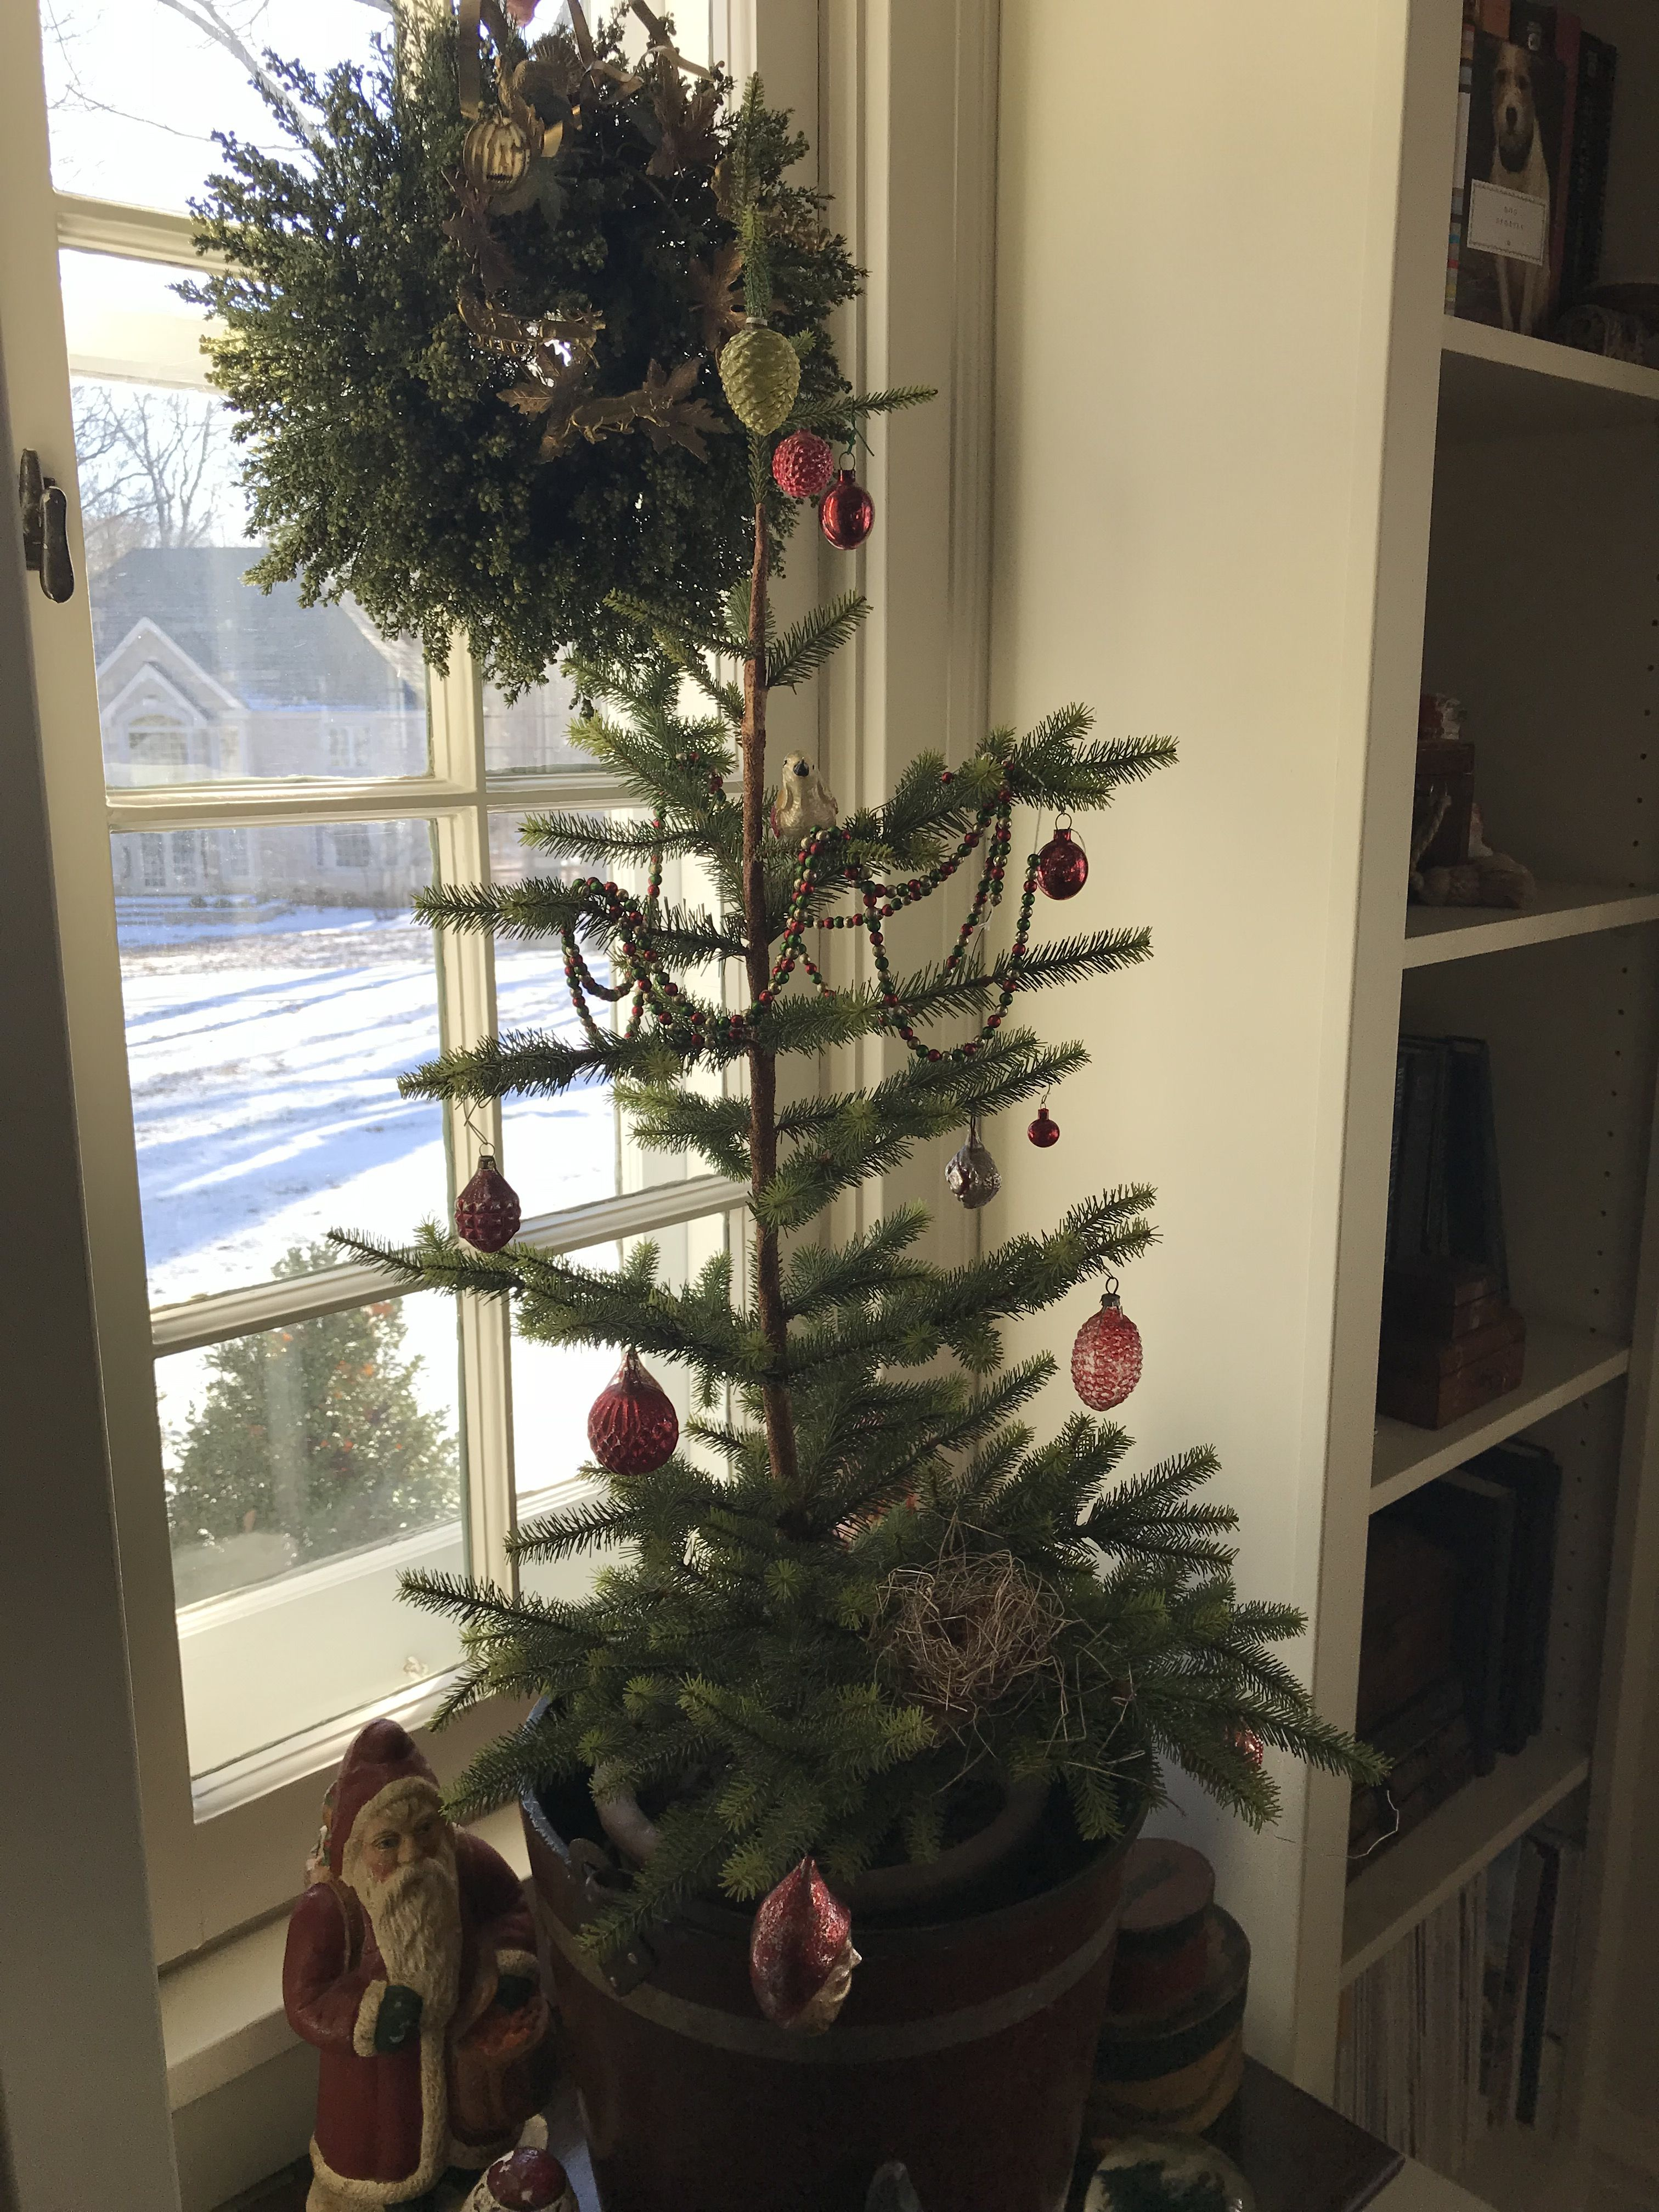 Pin By Gretchen Hall On Christmas Greens In 2020 Christmas Wreaths Holiday Decor Ladder Decor